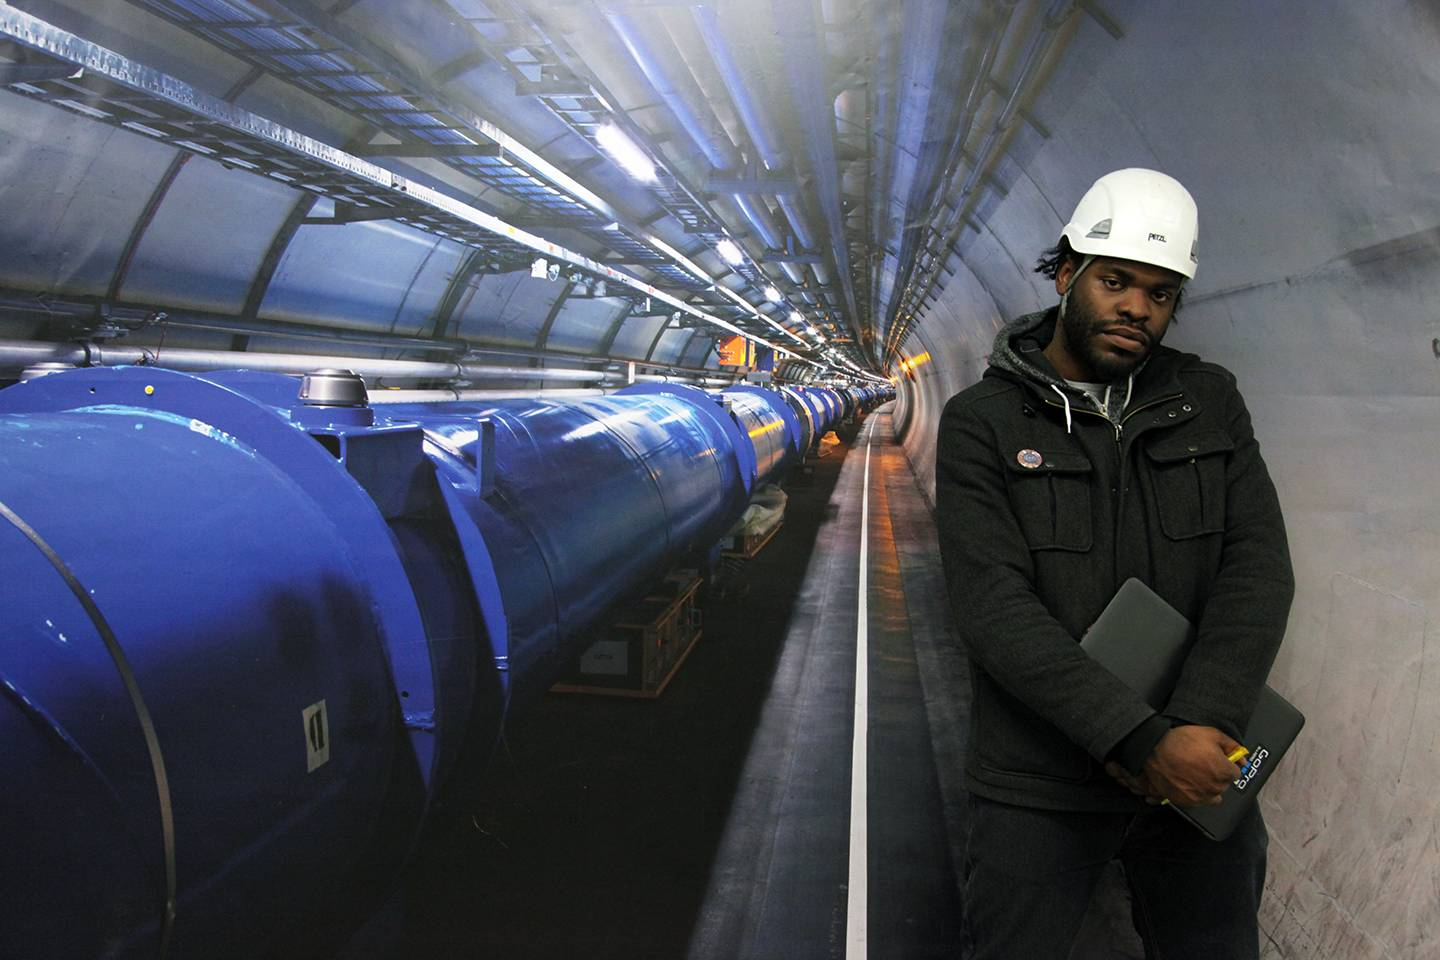 Rapper Consensus beside the Large Hadron Collider